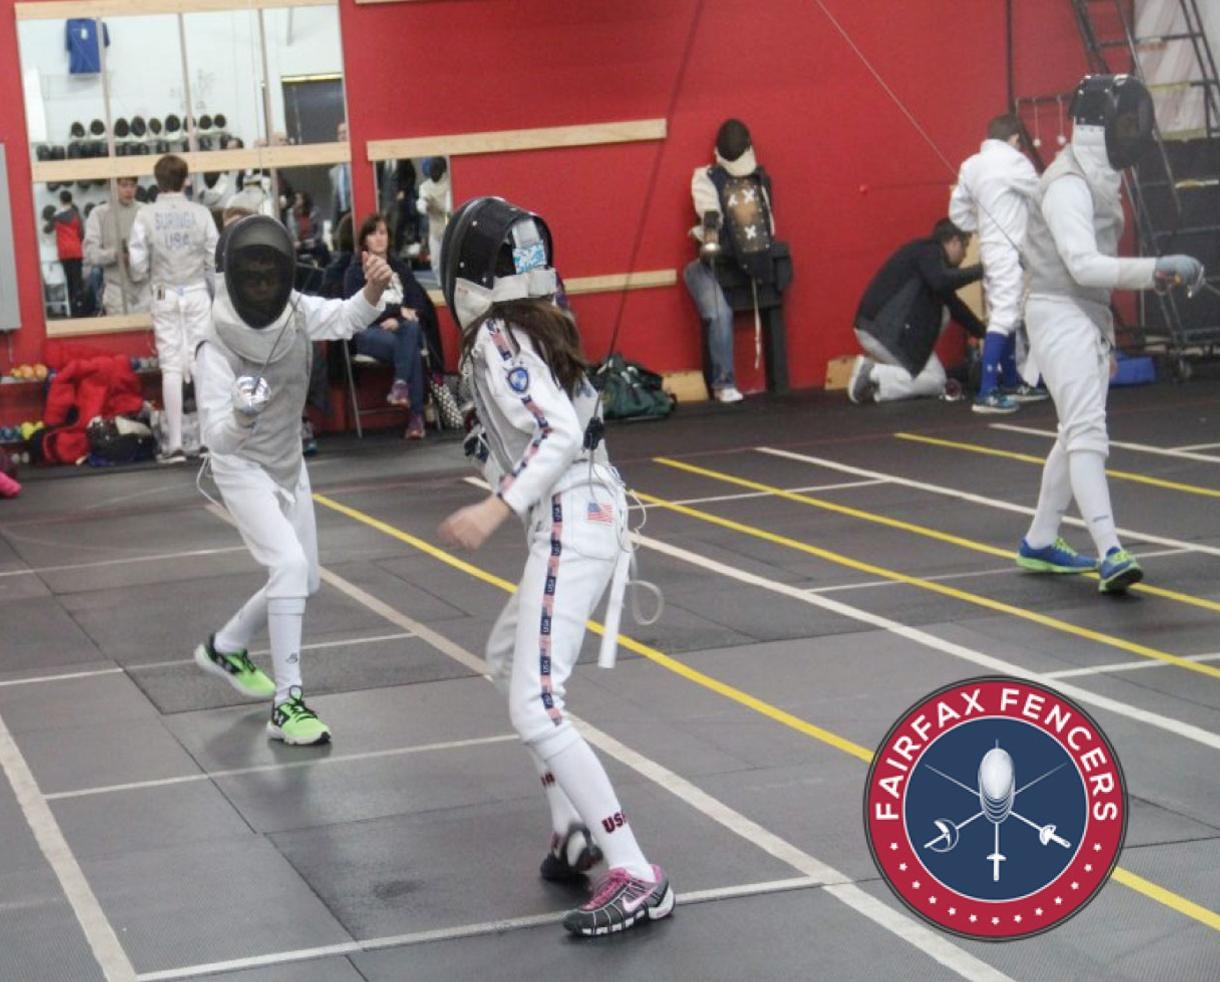 Fairfax Fencers Fencing Camp